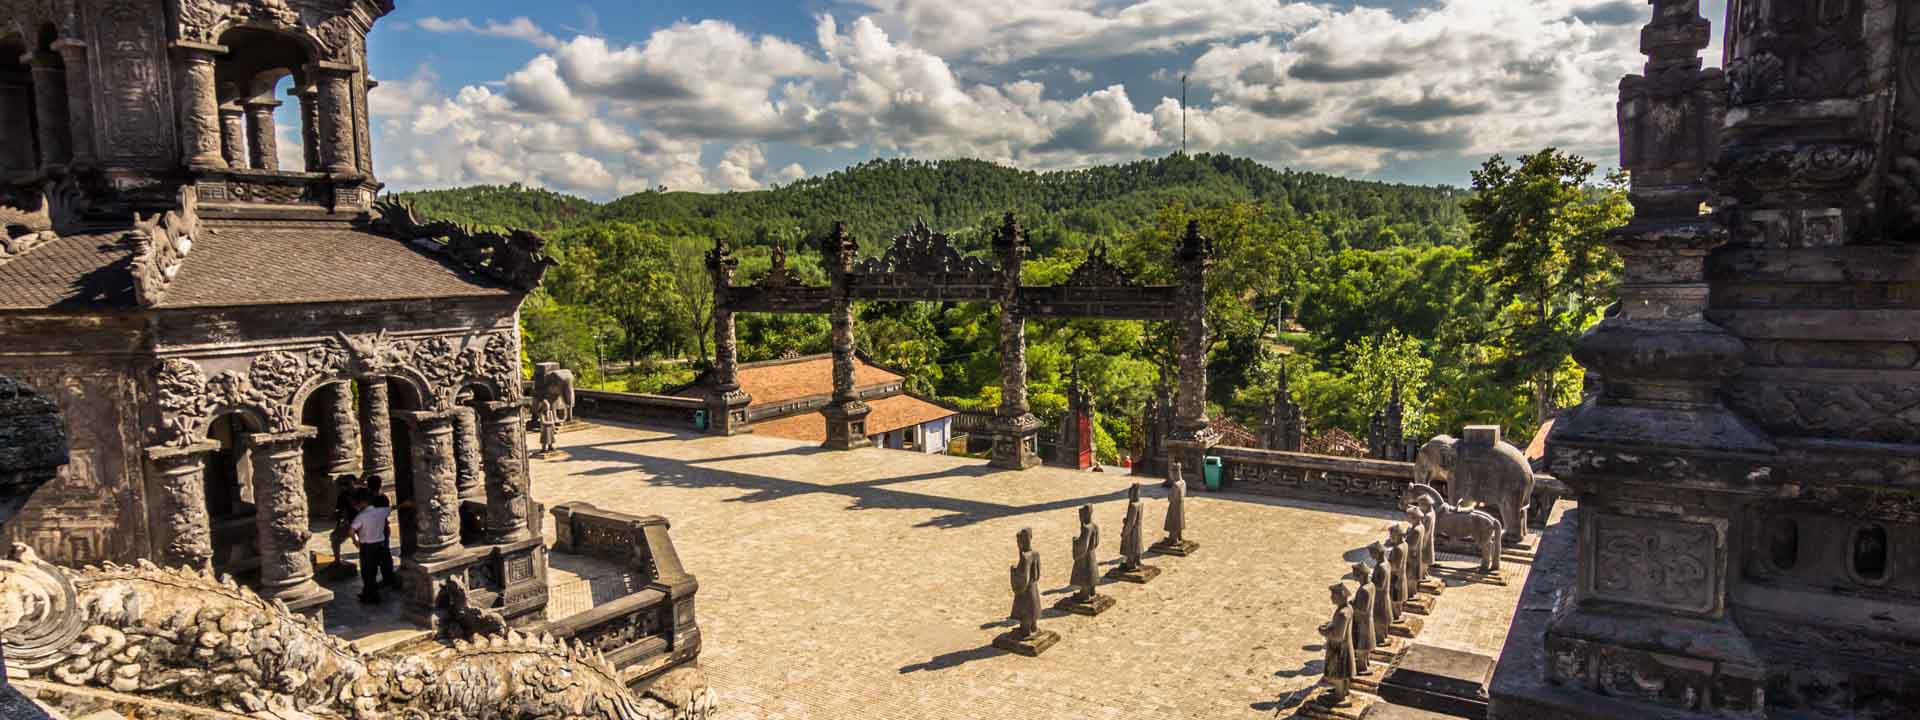 Discover The Hidden Treasures of Vietnam by Road 29 days